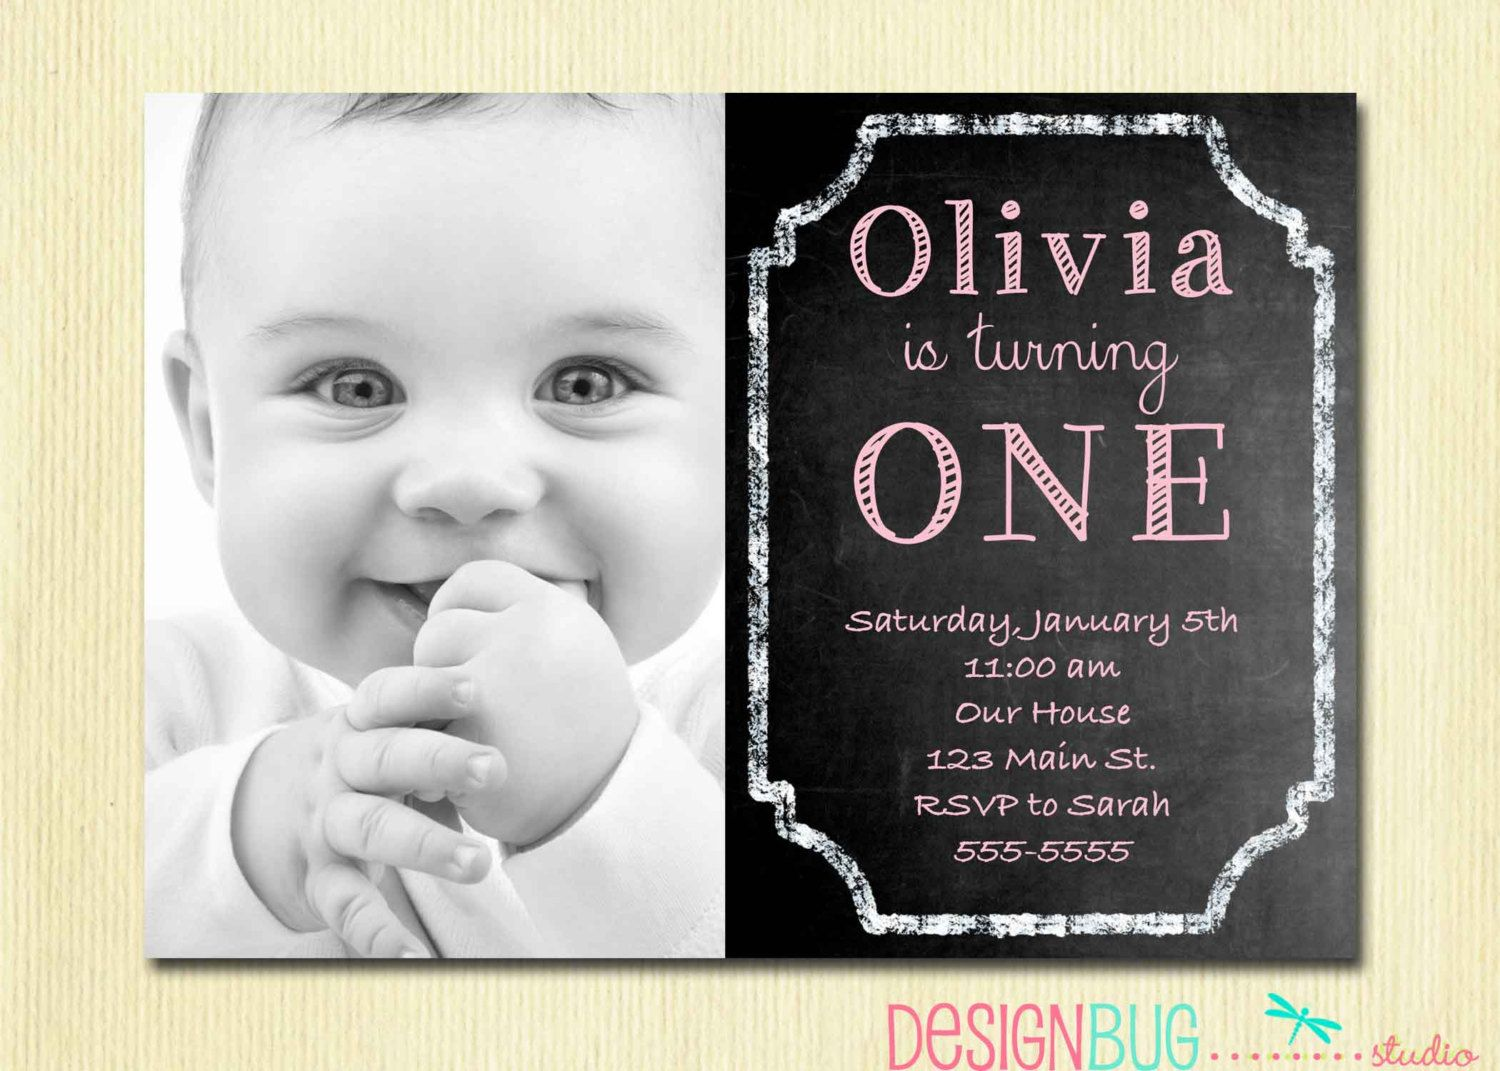 1st birthday girl invitation custom chalkboard photo invitation 1st birthday girl invitation custom chalkboard photo invitation printable 1 2 3 4 5 year old up to any age birthday invite stopboris